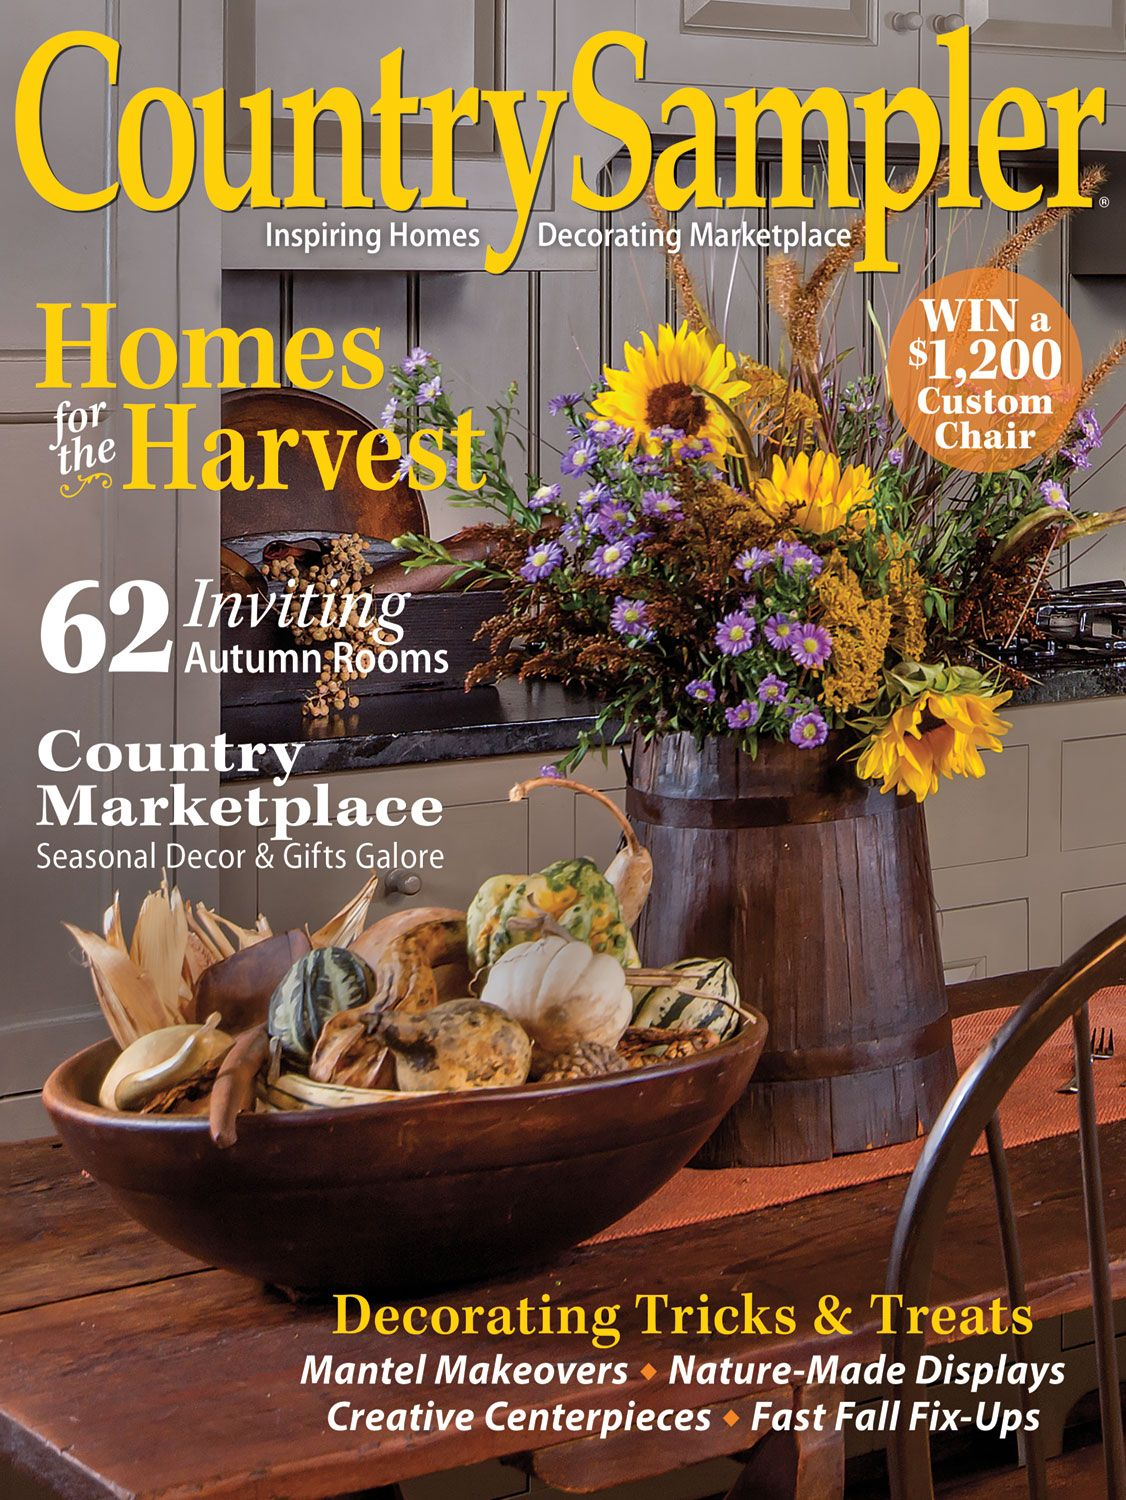 September Decorating Ideas Magnificent Our September Issue Is Chockfull Of Great Fall Decorating Ideas . Design Inspiration